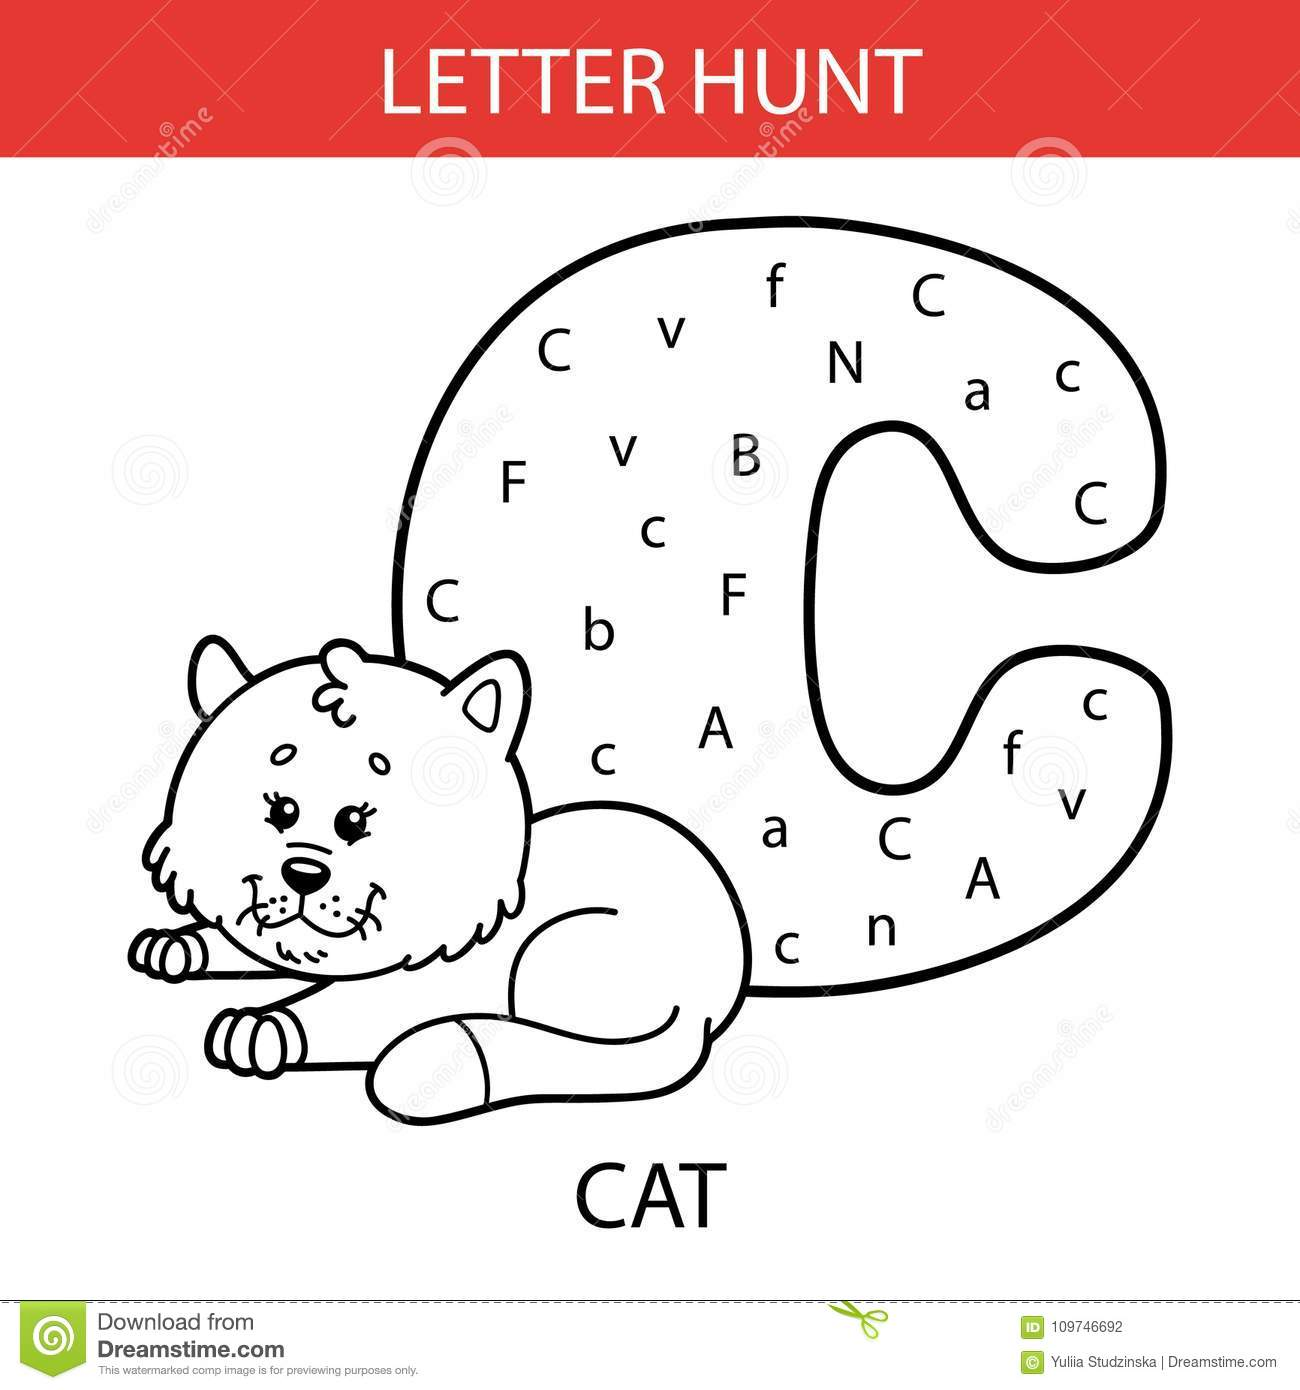 Cat Worksheets For Preschoolers